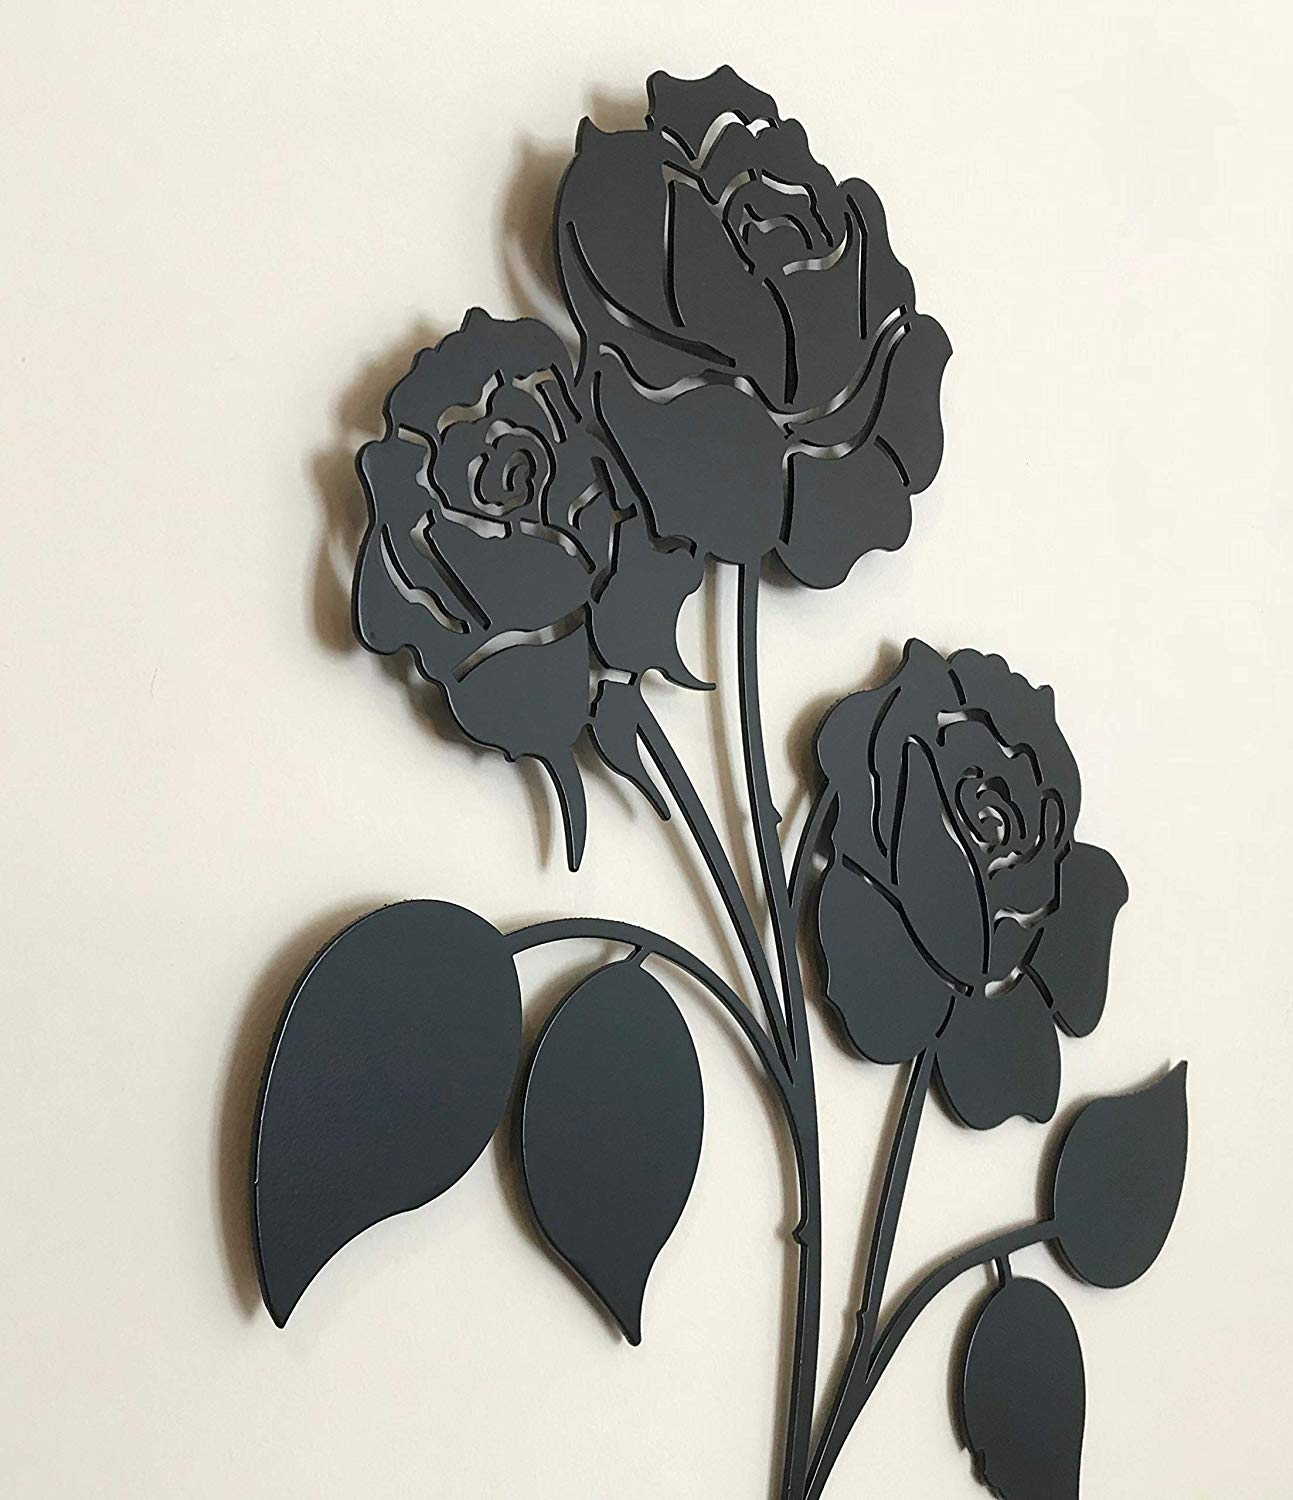 Image of: Rose Flower Wrought Iron Wall Art Home Decor Decoration Patio Metal Black Plaque